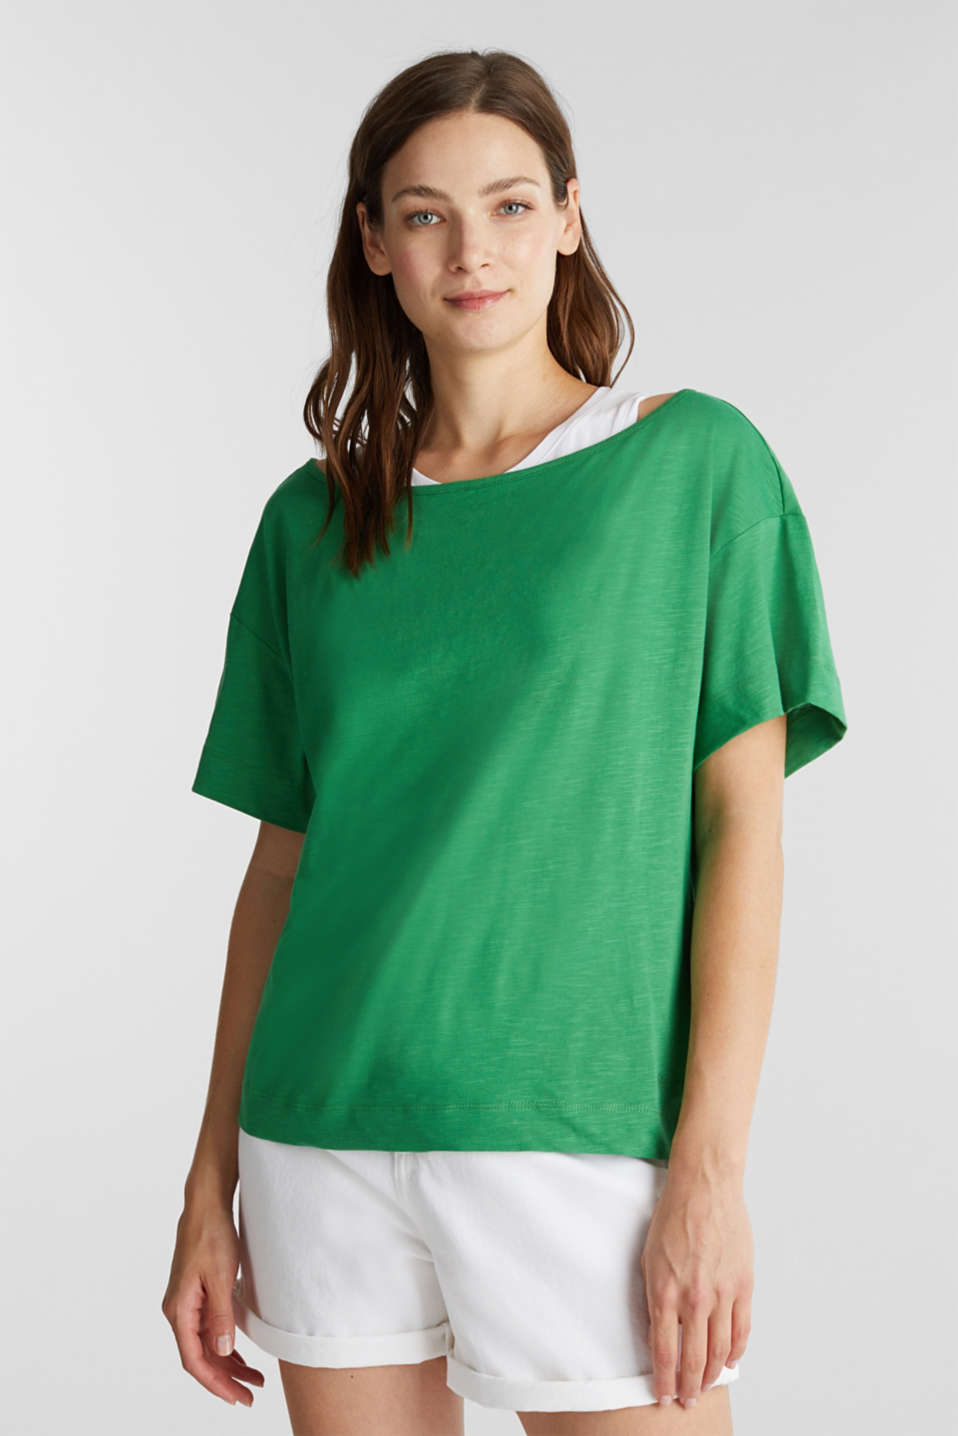 edc - Layered tops made of organic cotton